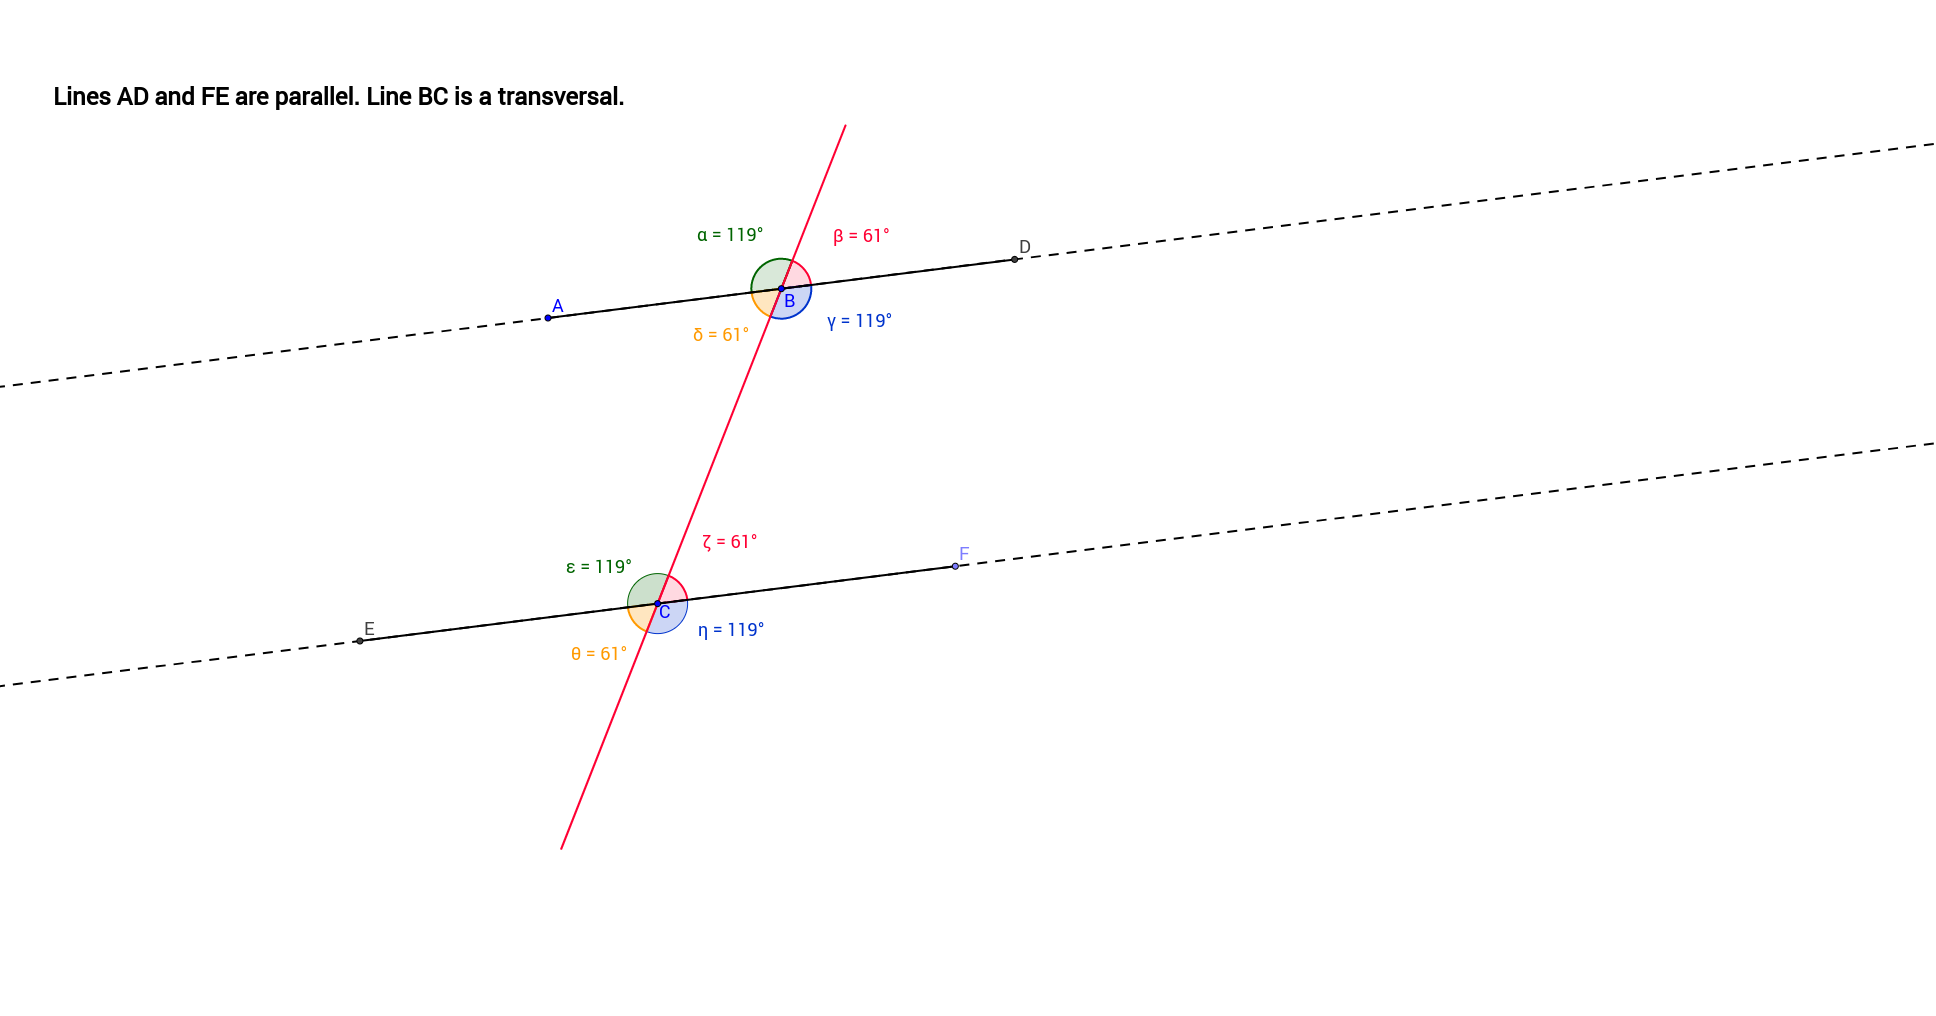 worksheet Corresponding Angles corresponding angles geogebra use points a b and c to move the lines observe angle values 2